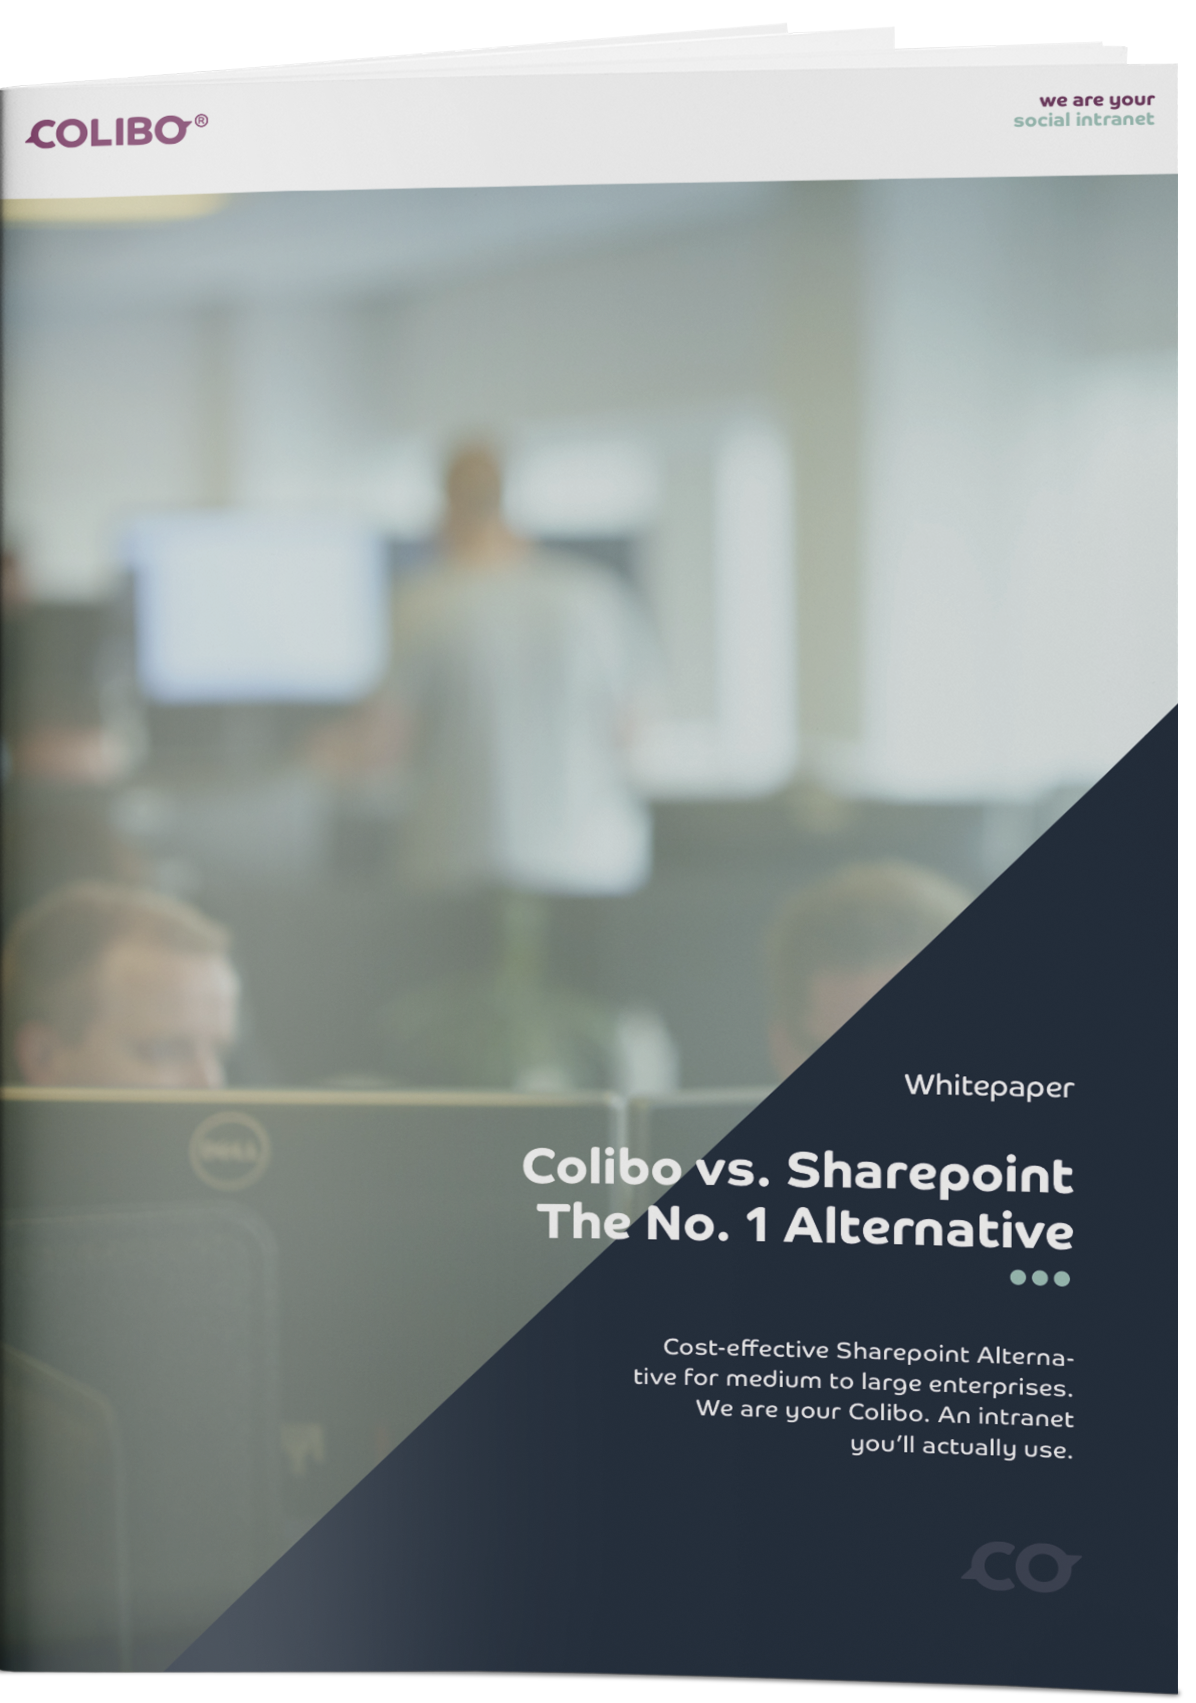 colibo sharepoint alternative whitepaper